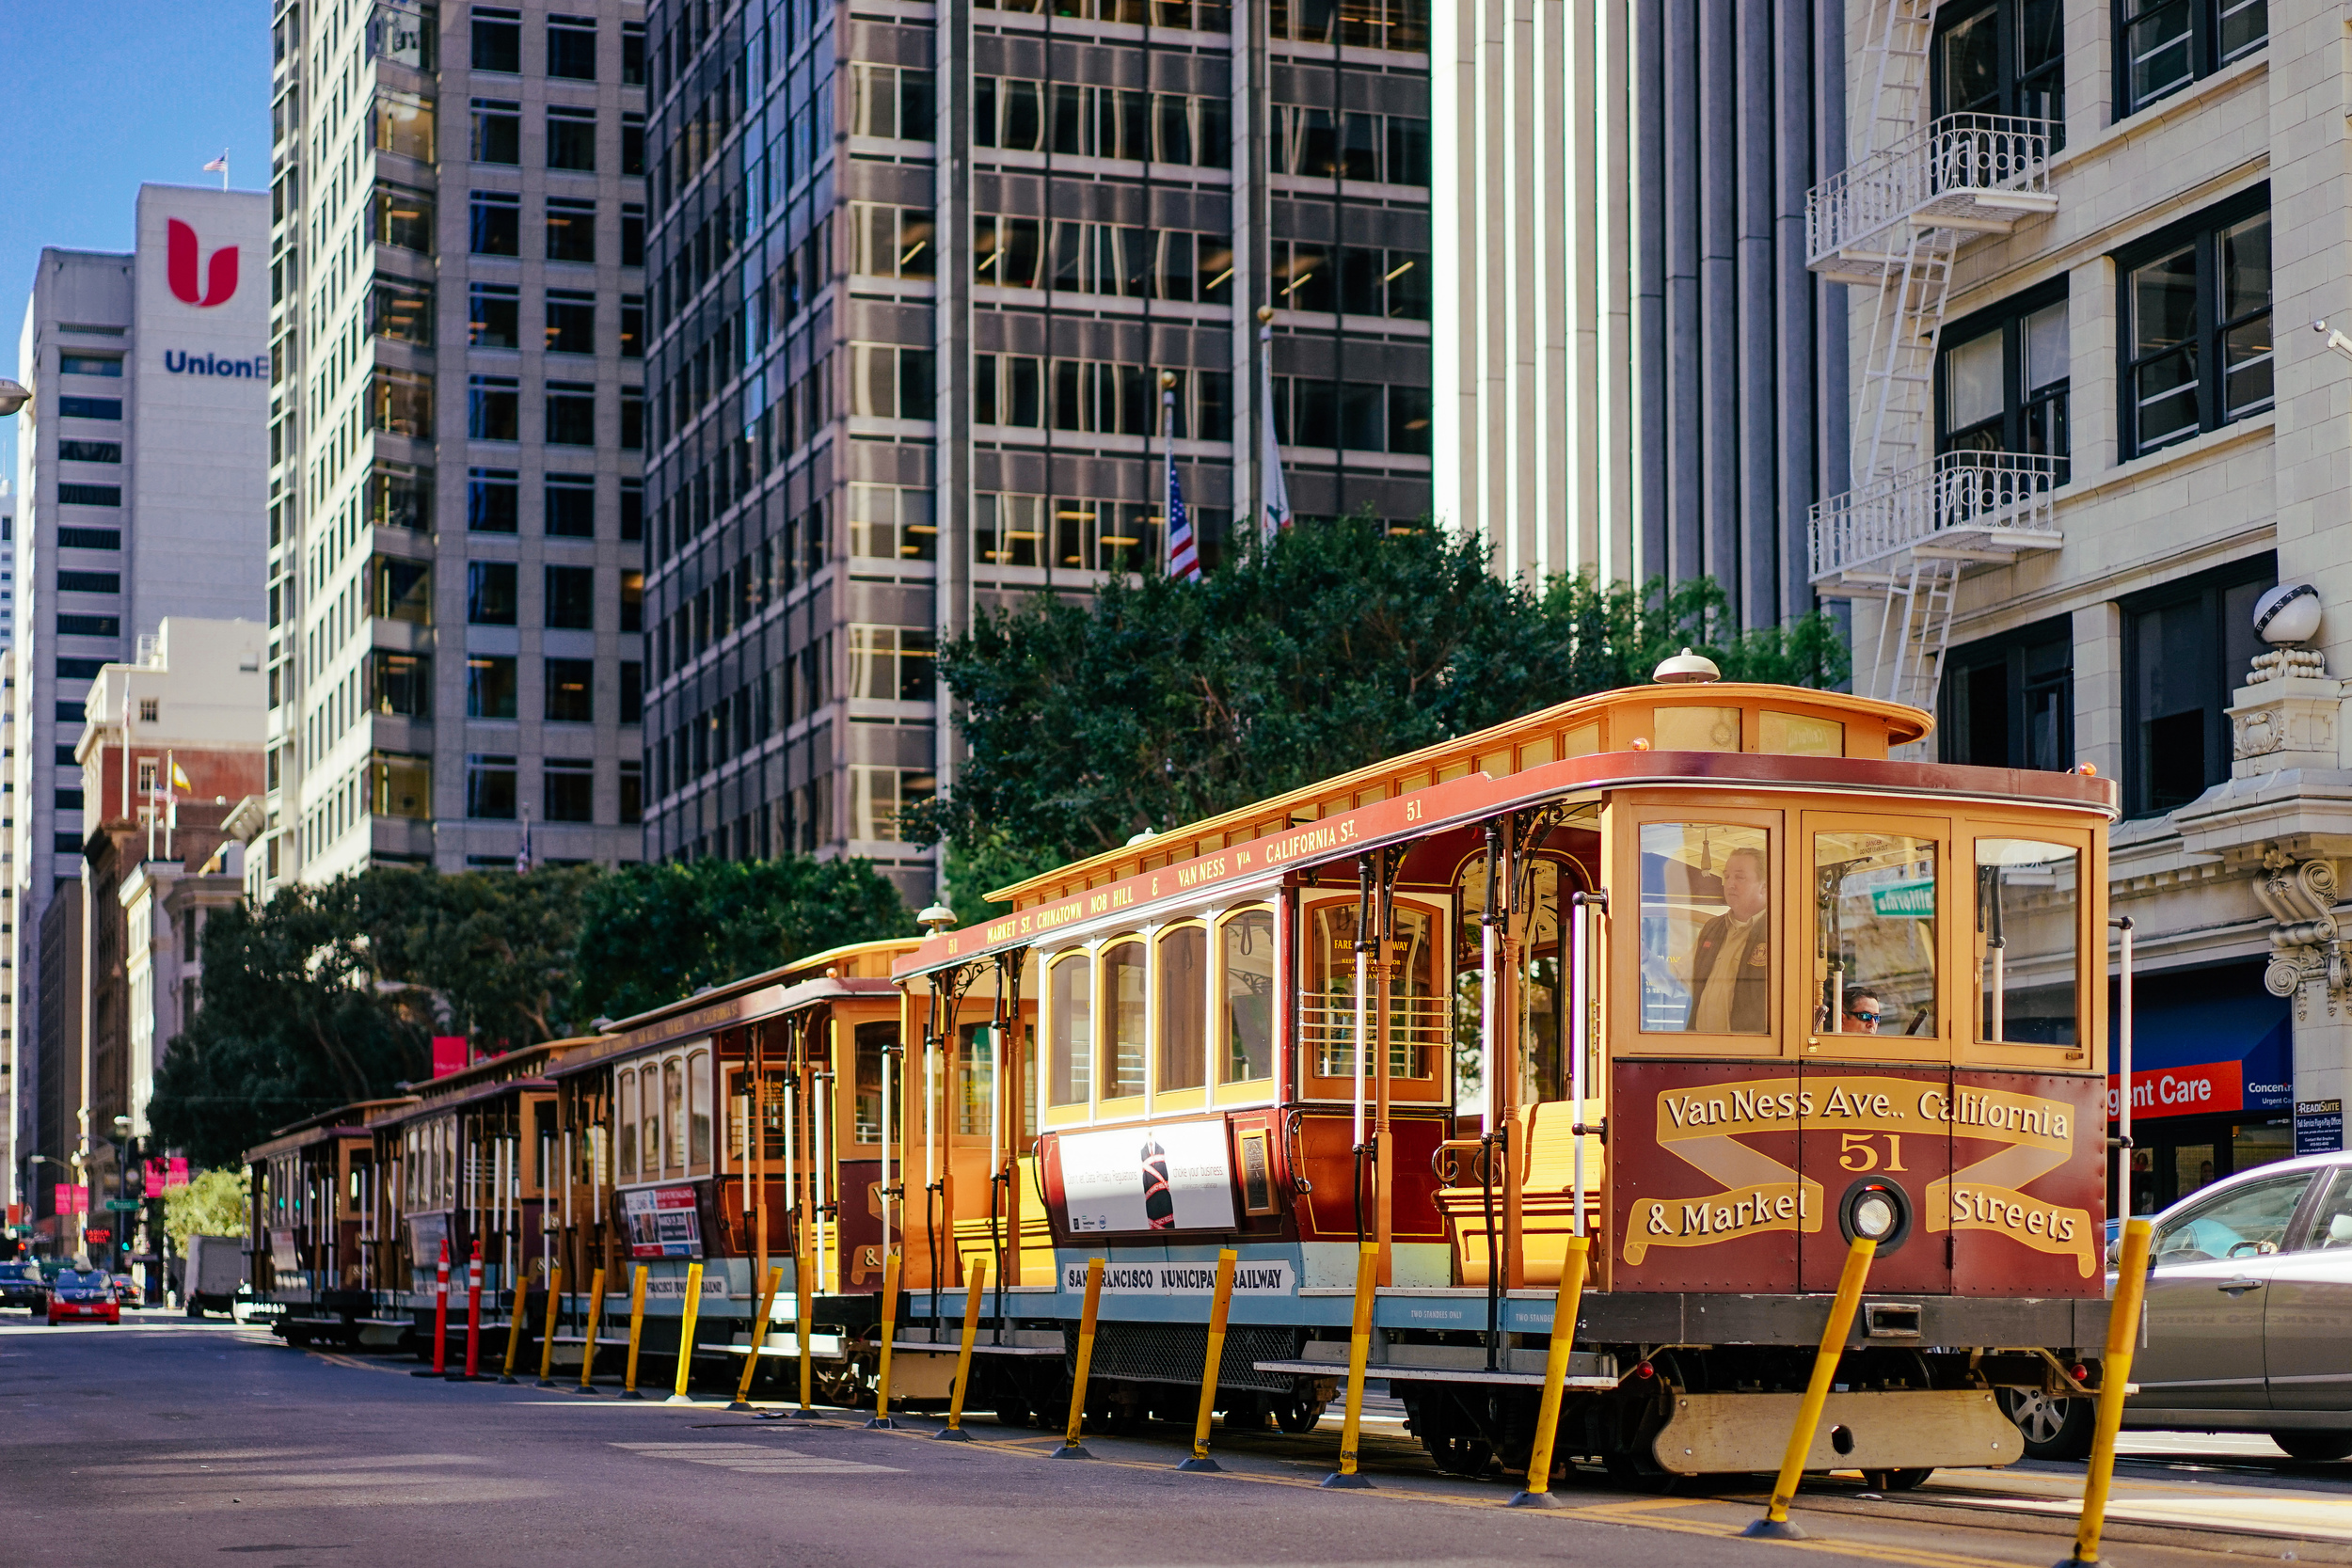 California Street Cable Cars